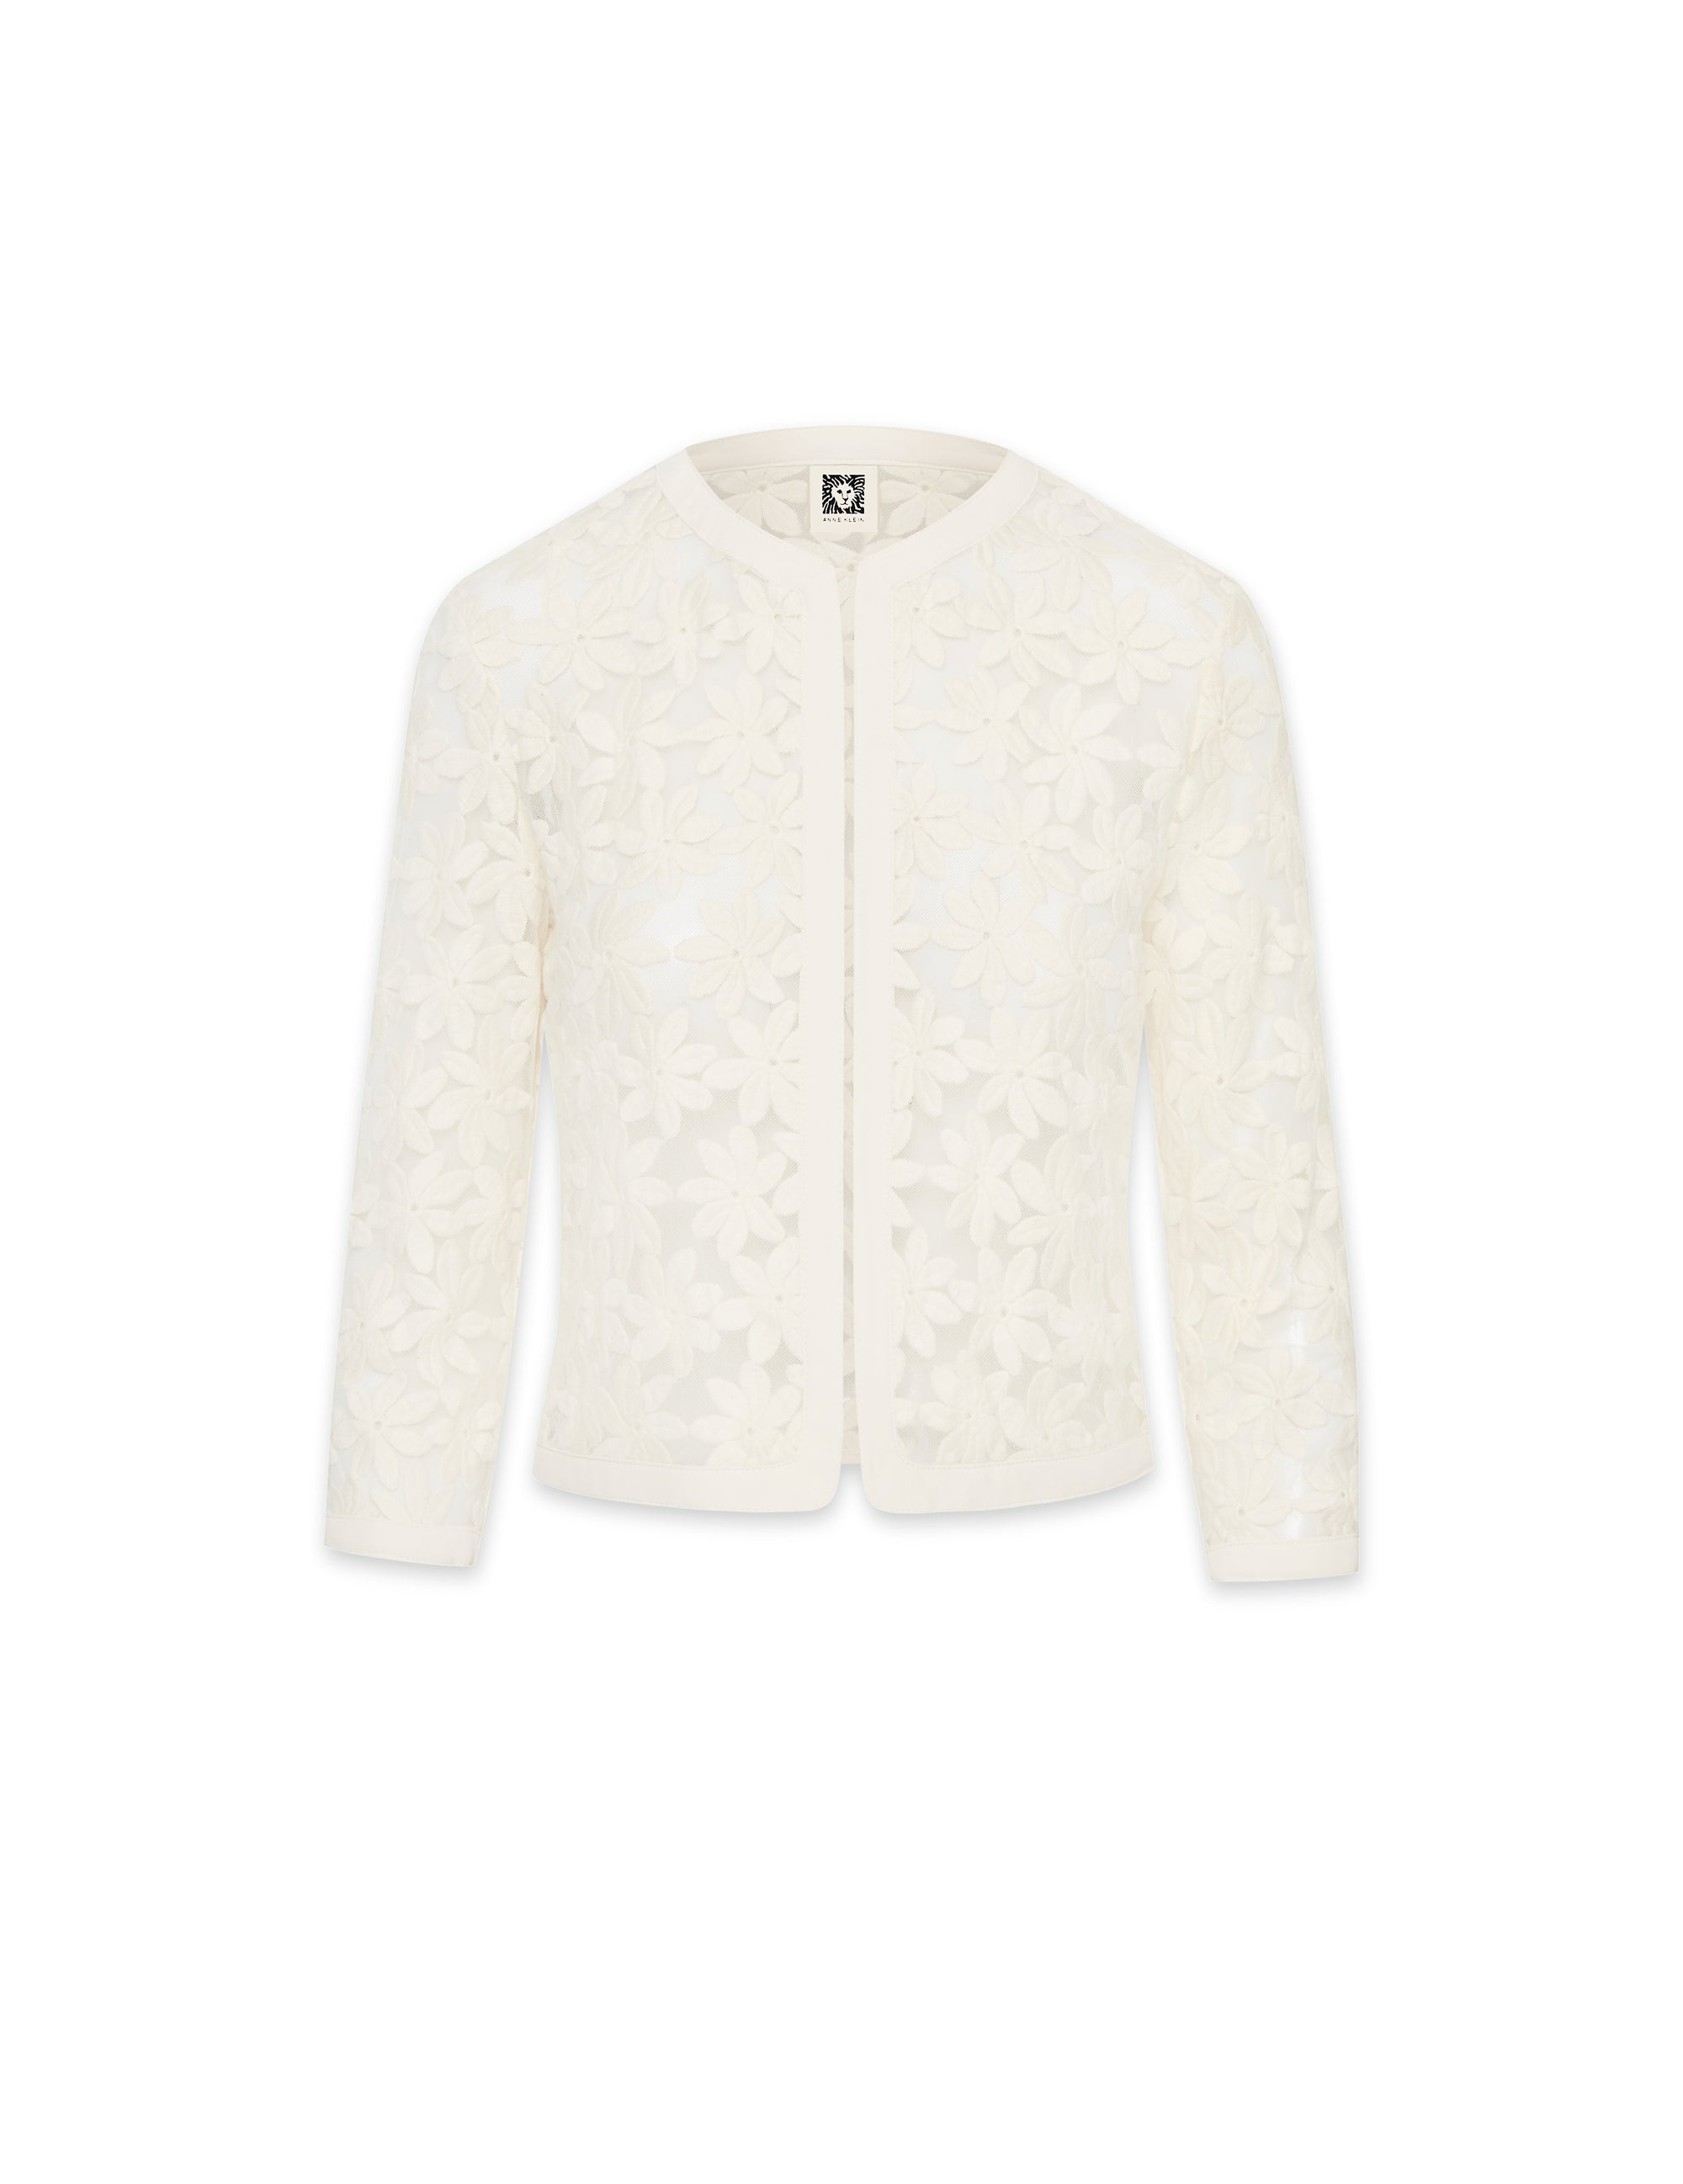 Anne Klein White Lace Cardigan Jacket With Trim